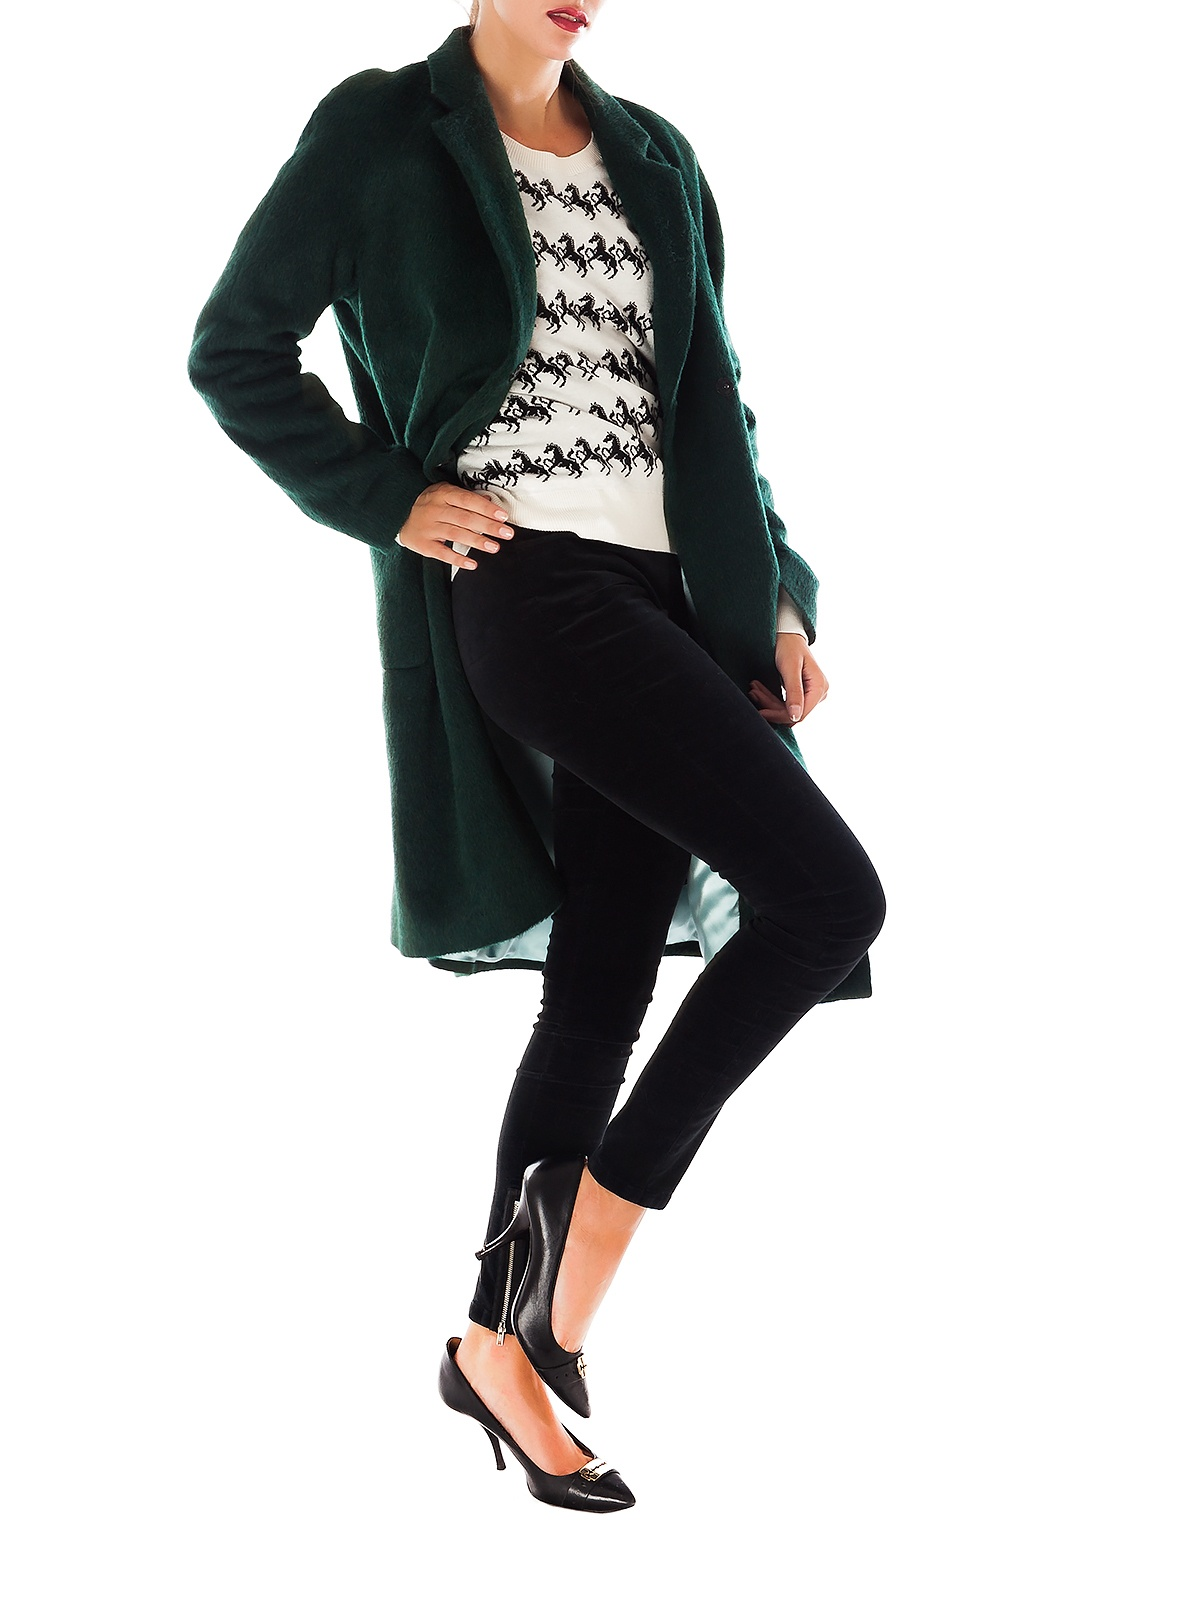 MAY GREEN MASCULINE STYLE OVERCOAT | GIRISSIMA.COM - Collectible fashion to love and to last